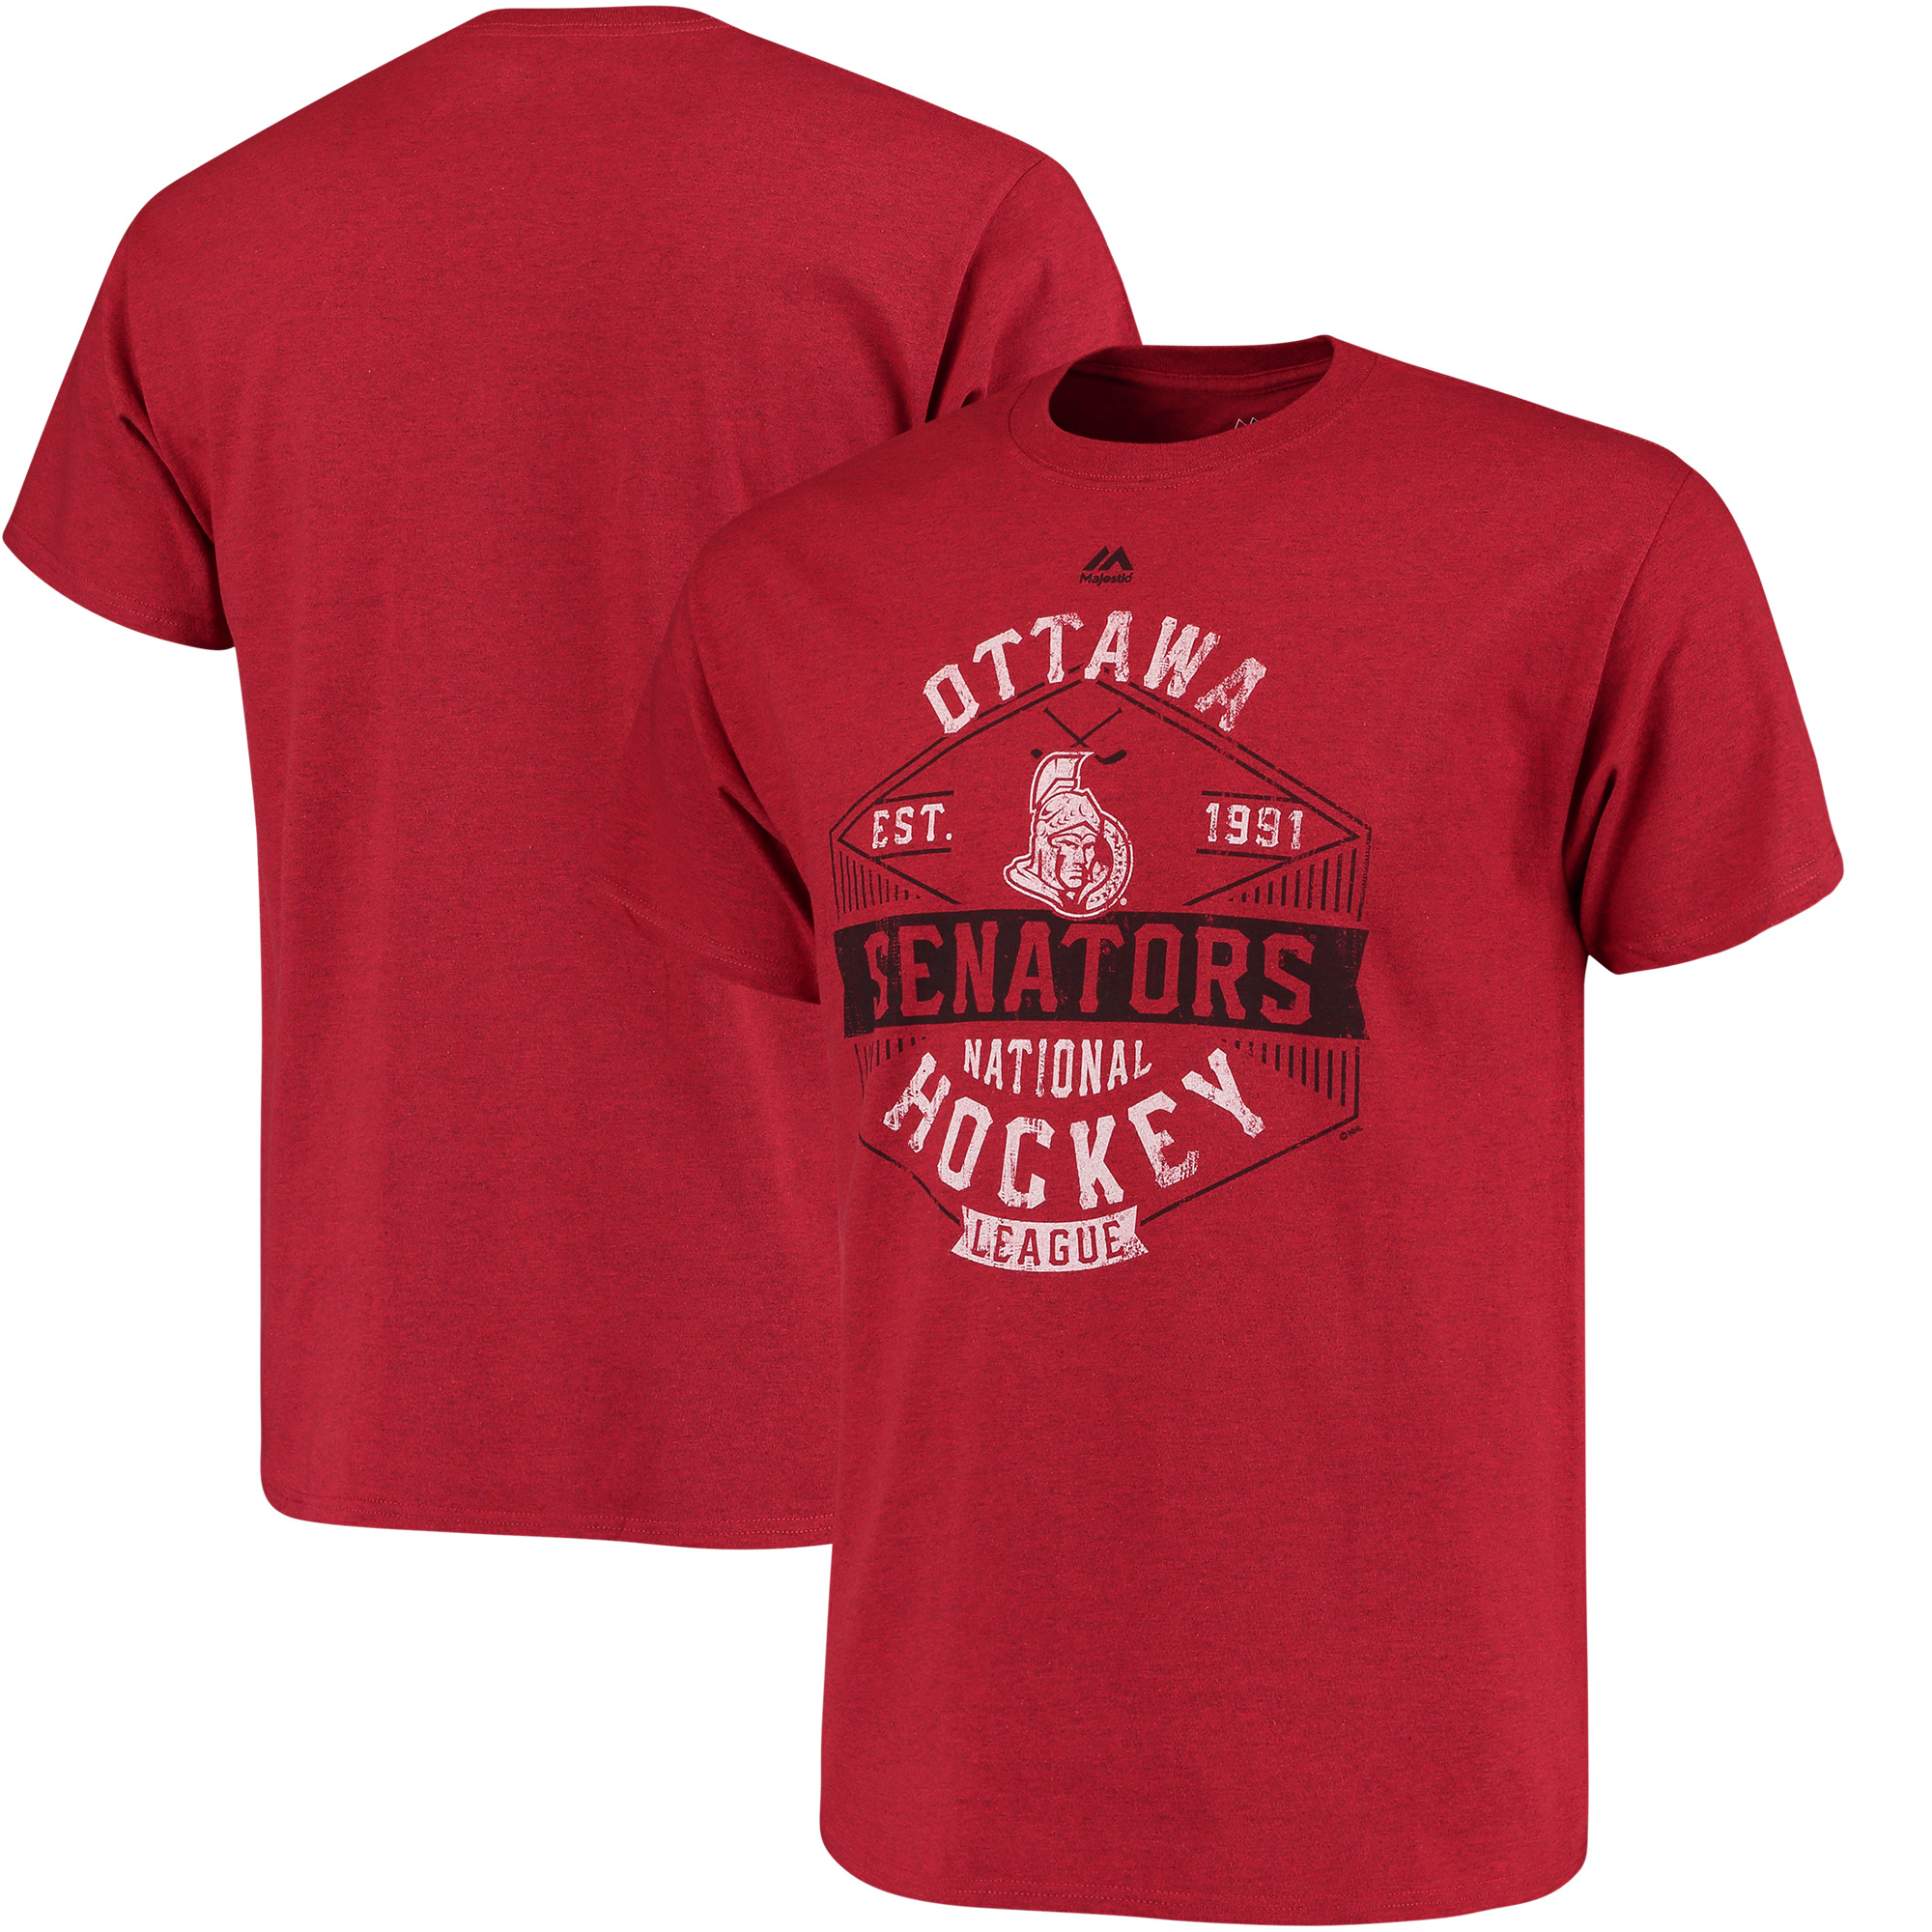 Ottawa Senators Majestic Expansion Draft T-Shirt - Red